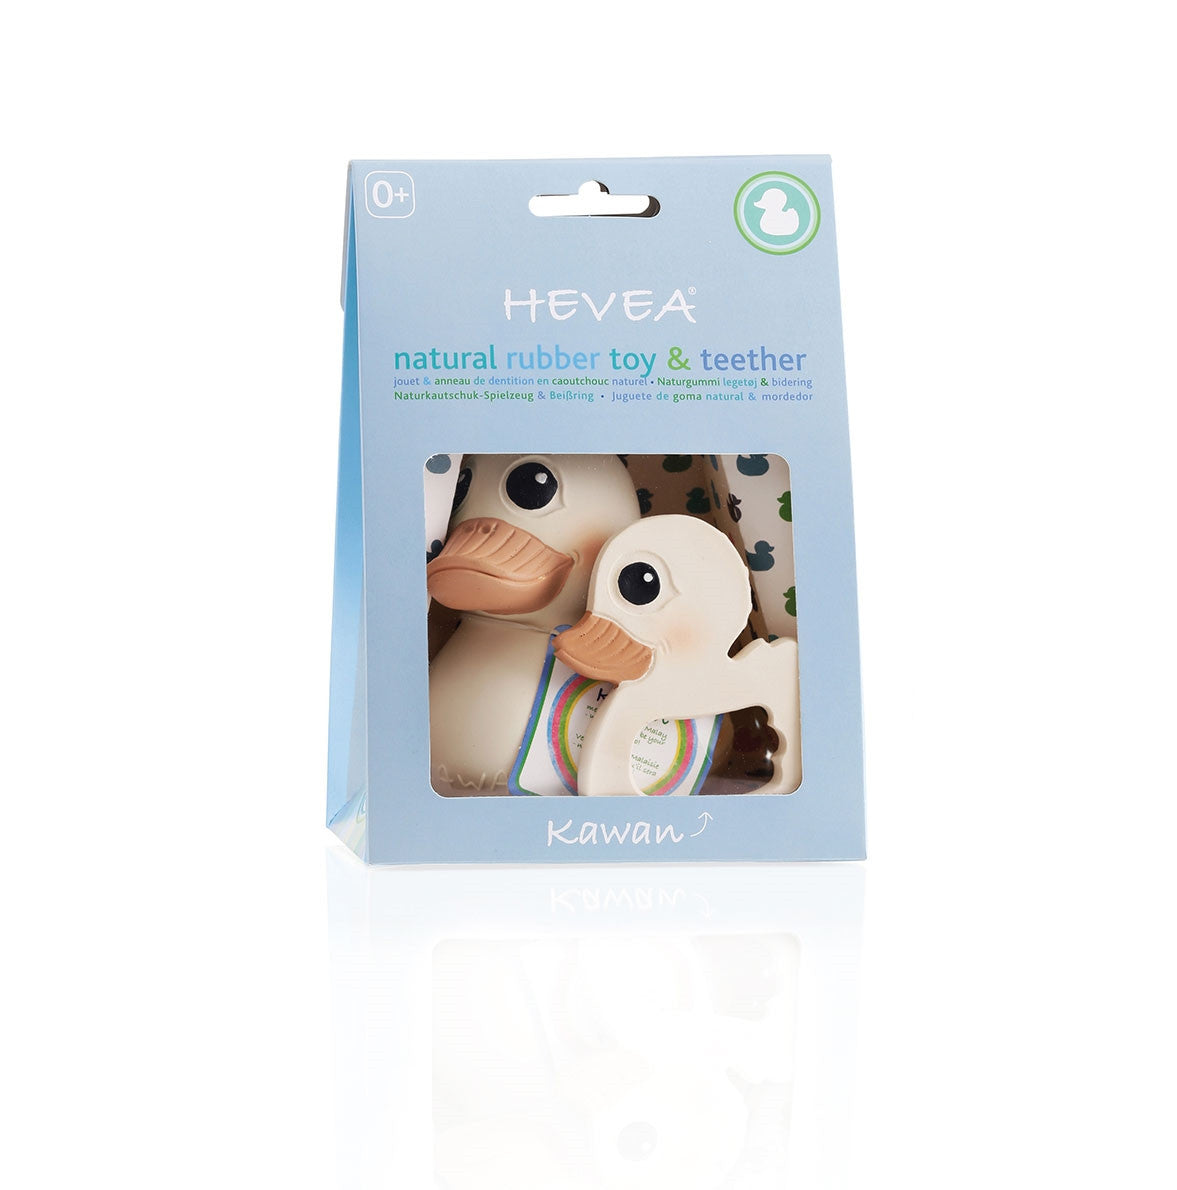 Kawan Natural Rubber Toy & Teether